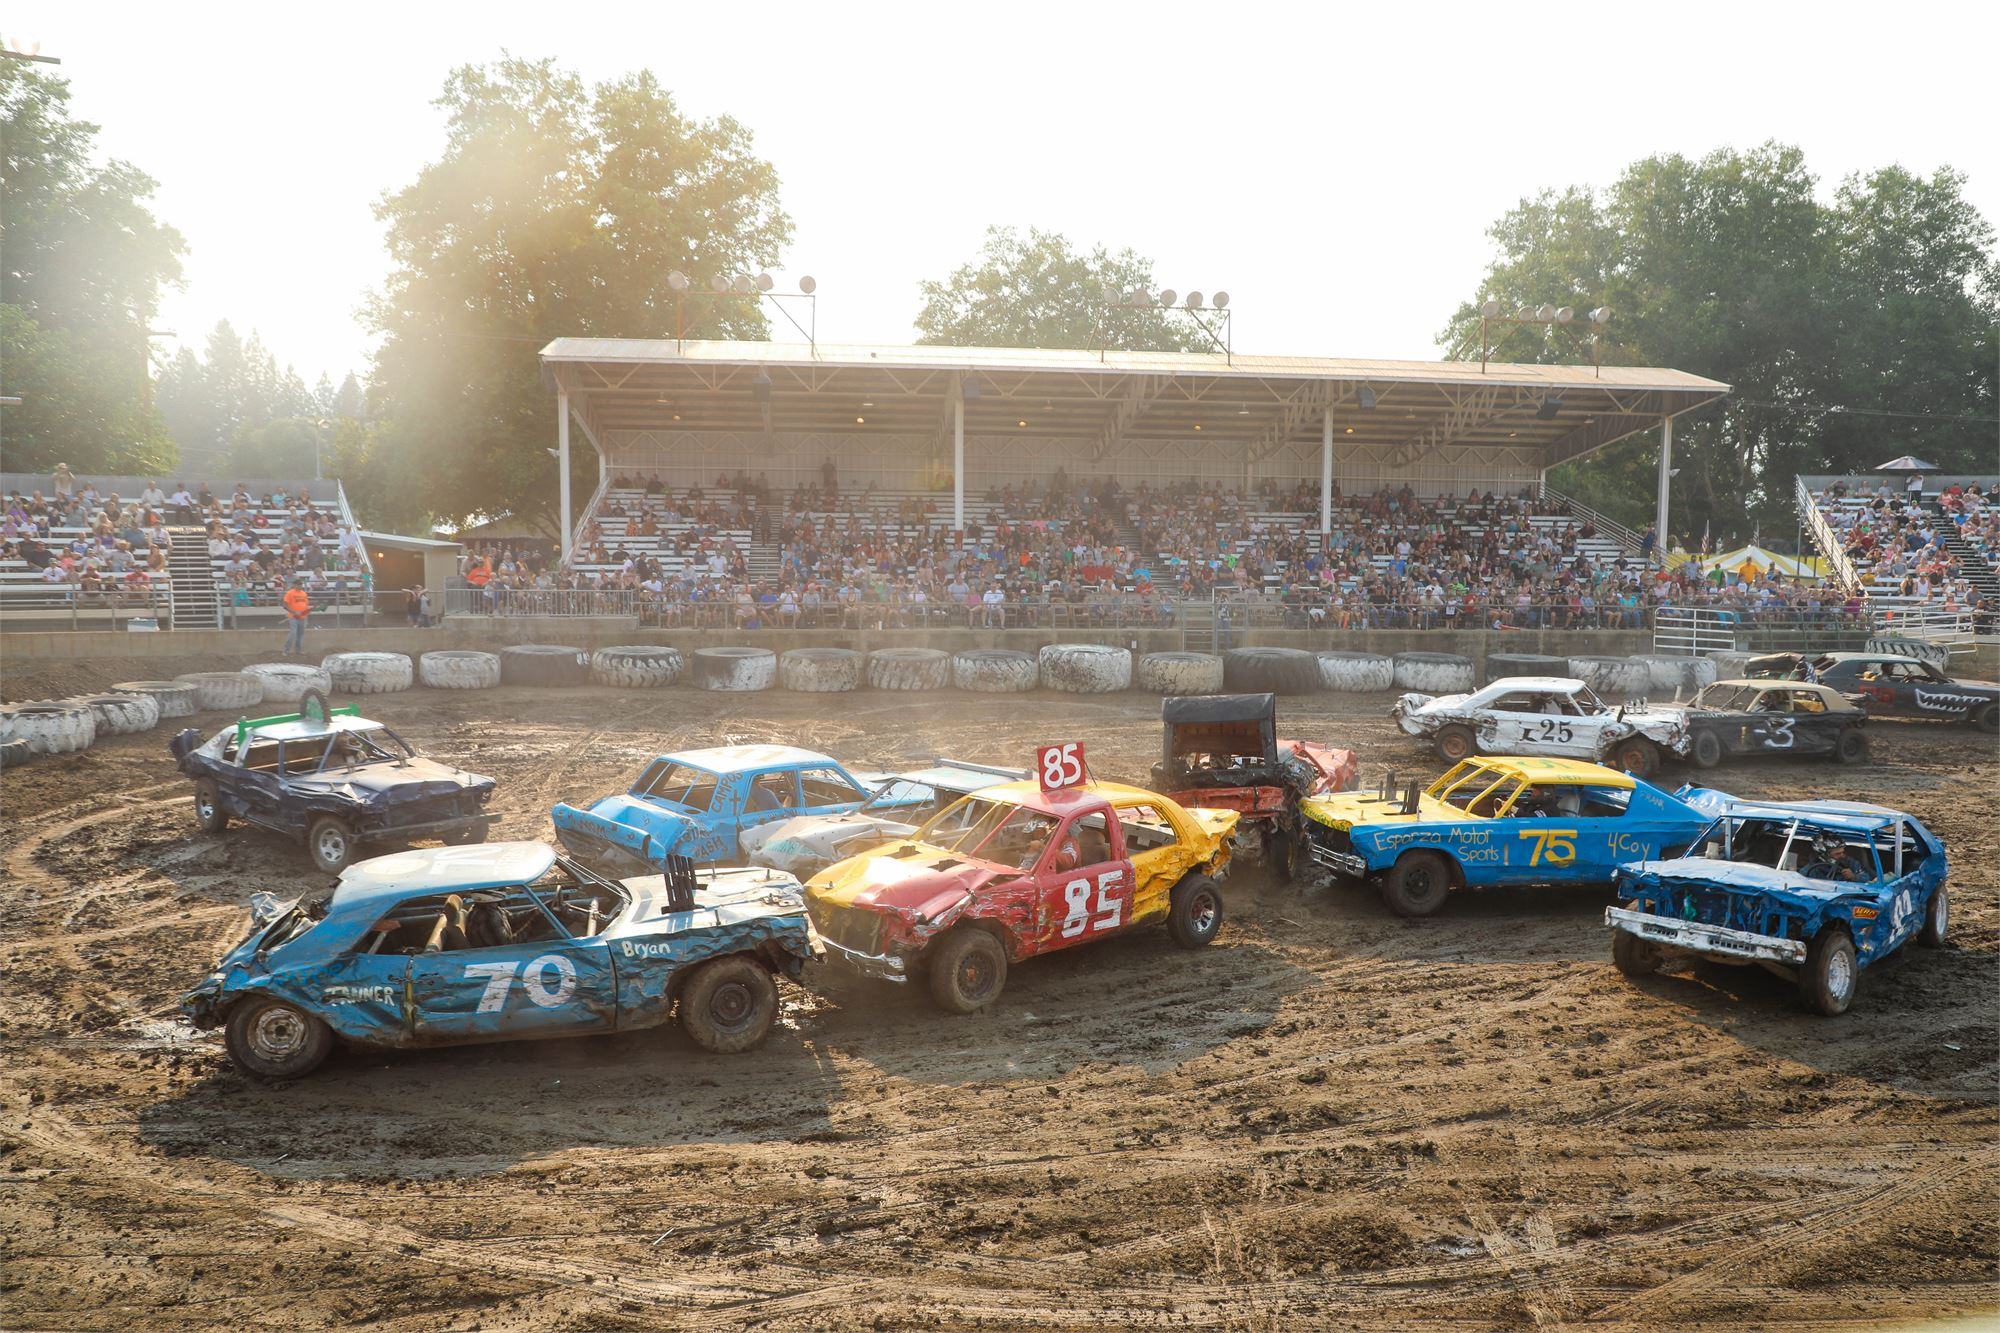 Les Schwab Tire Center <br> DESTRUCTION DERBY <br> presented by Yreka Motors